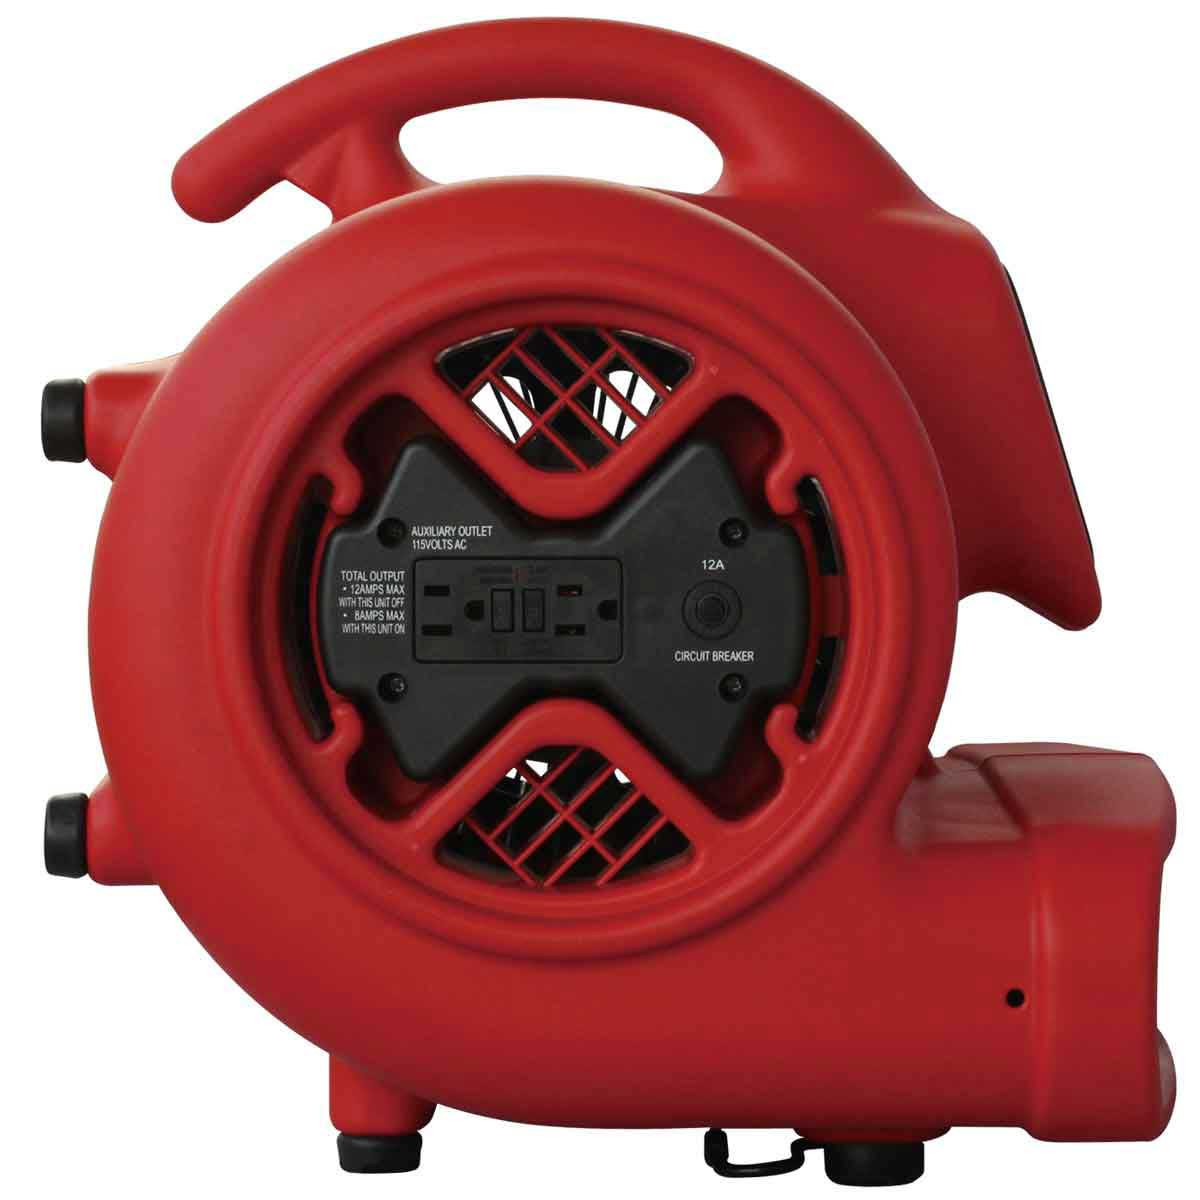 Hawk Air Mover ventilator tilted